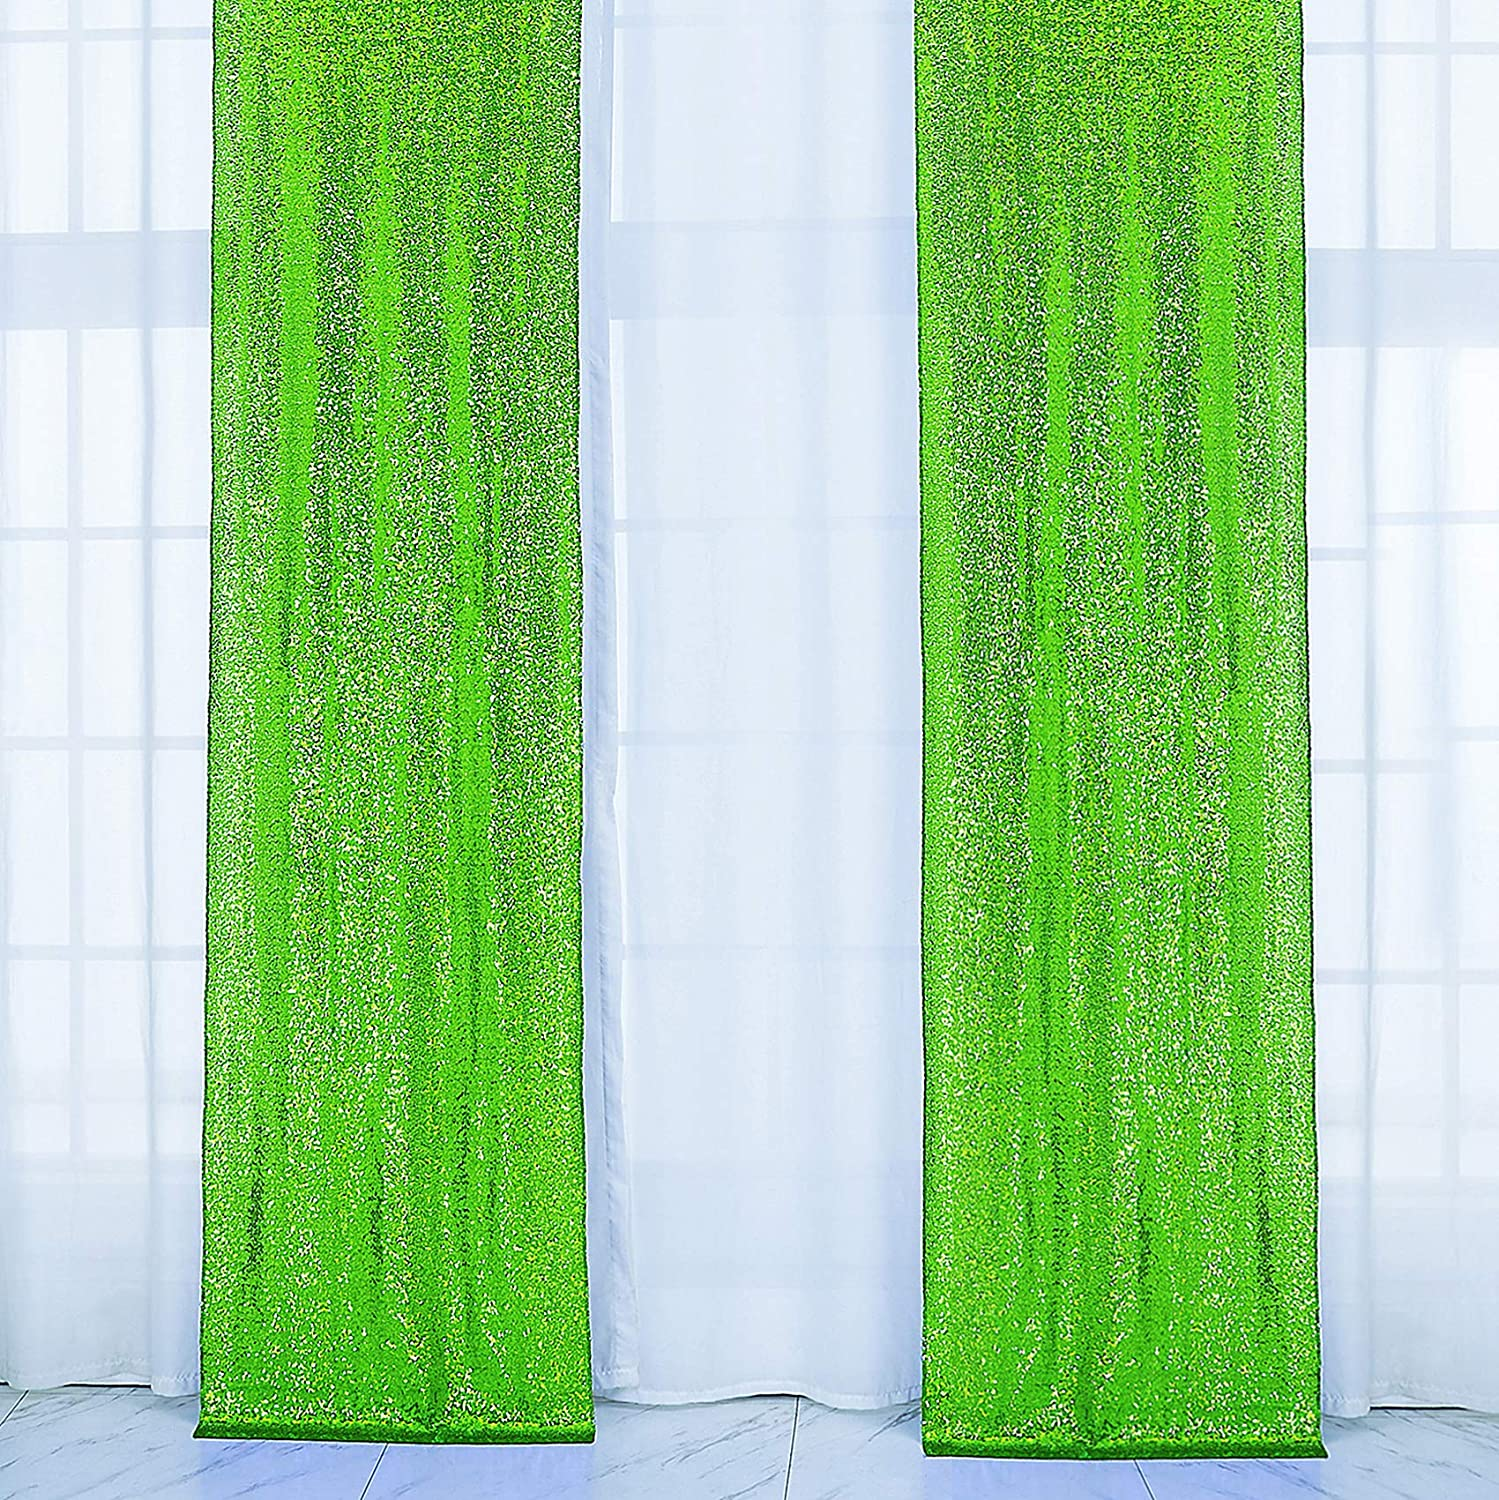 2×8FT-2PCS Apple Green Sequin Backdrop Curtains Panels, Photography Backdrop Glitter Curtains Fabric Background for Wedding Party Decor